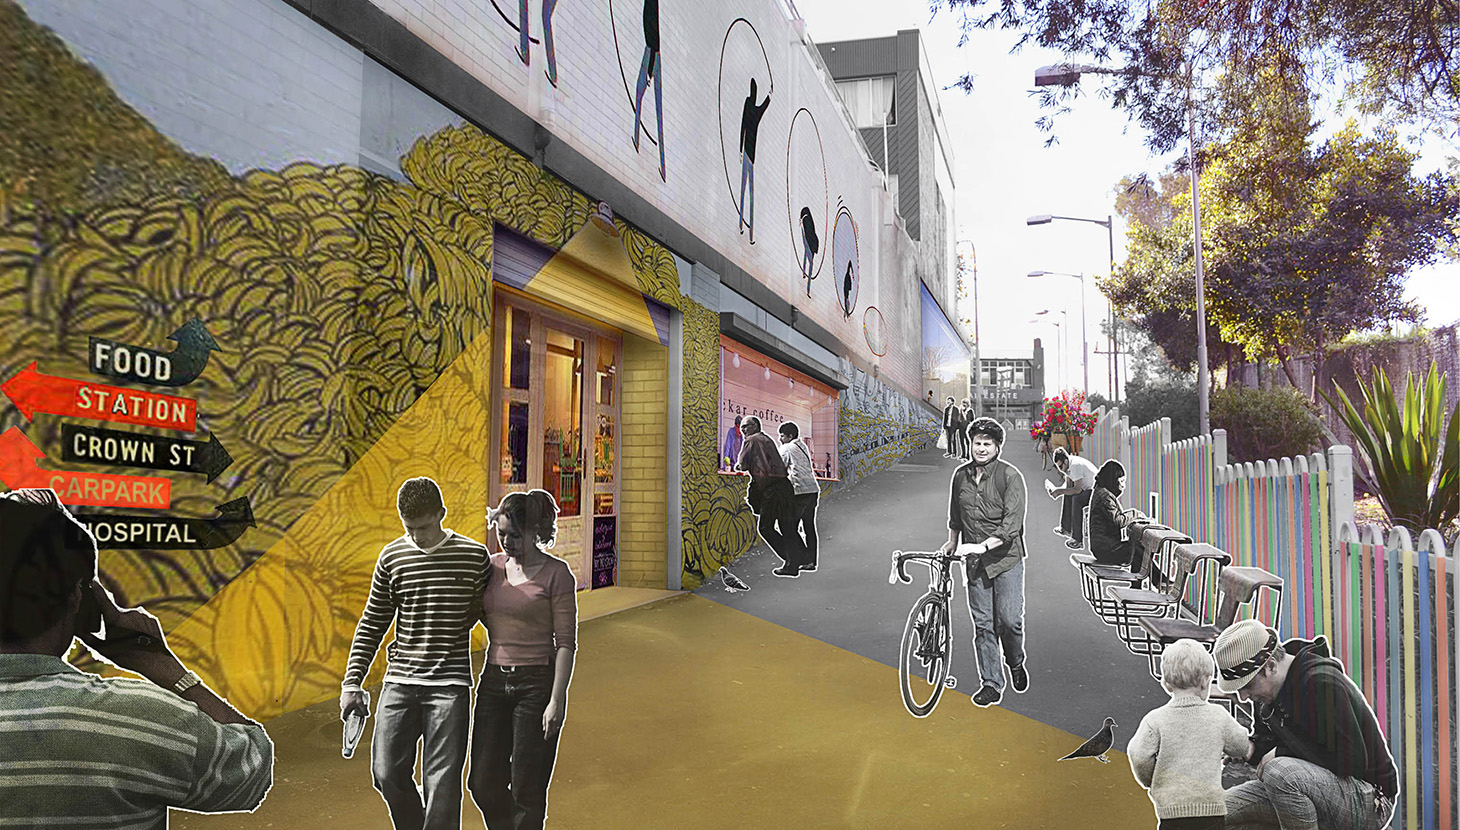 Collaborating with Gehl Architects, Wollongong's strategy promotes a human scale urban form and low cost interventions to catalyse public life.